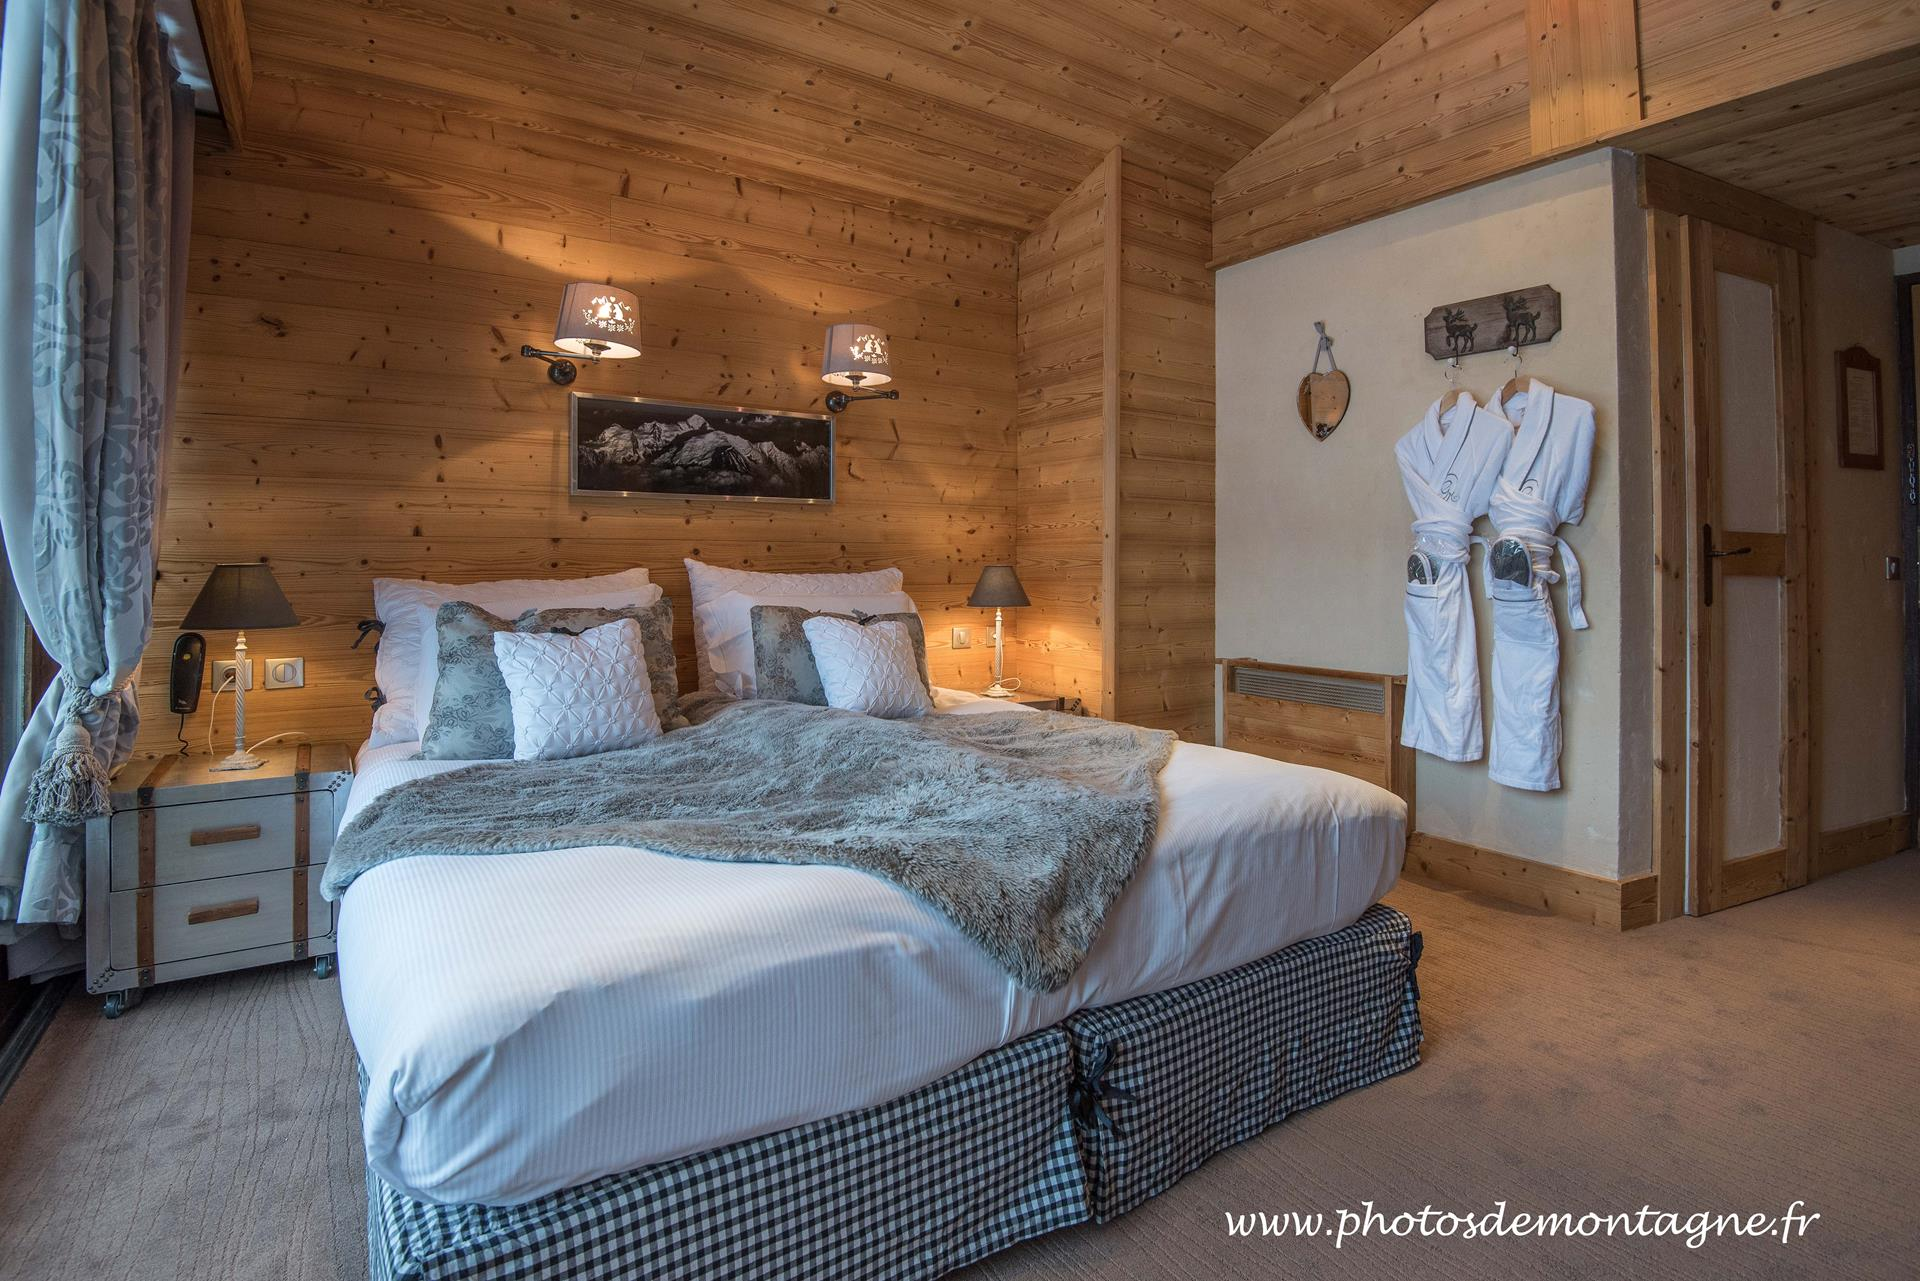 D co chambre esprit montagne for Decoration de chalet